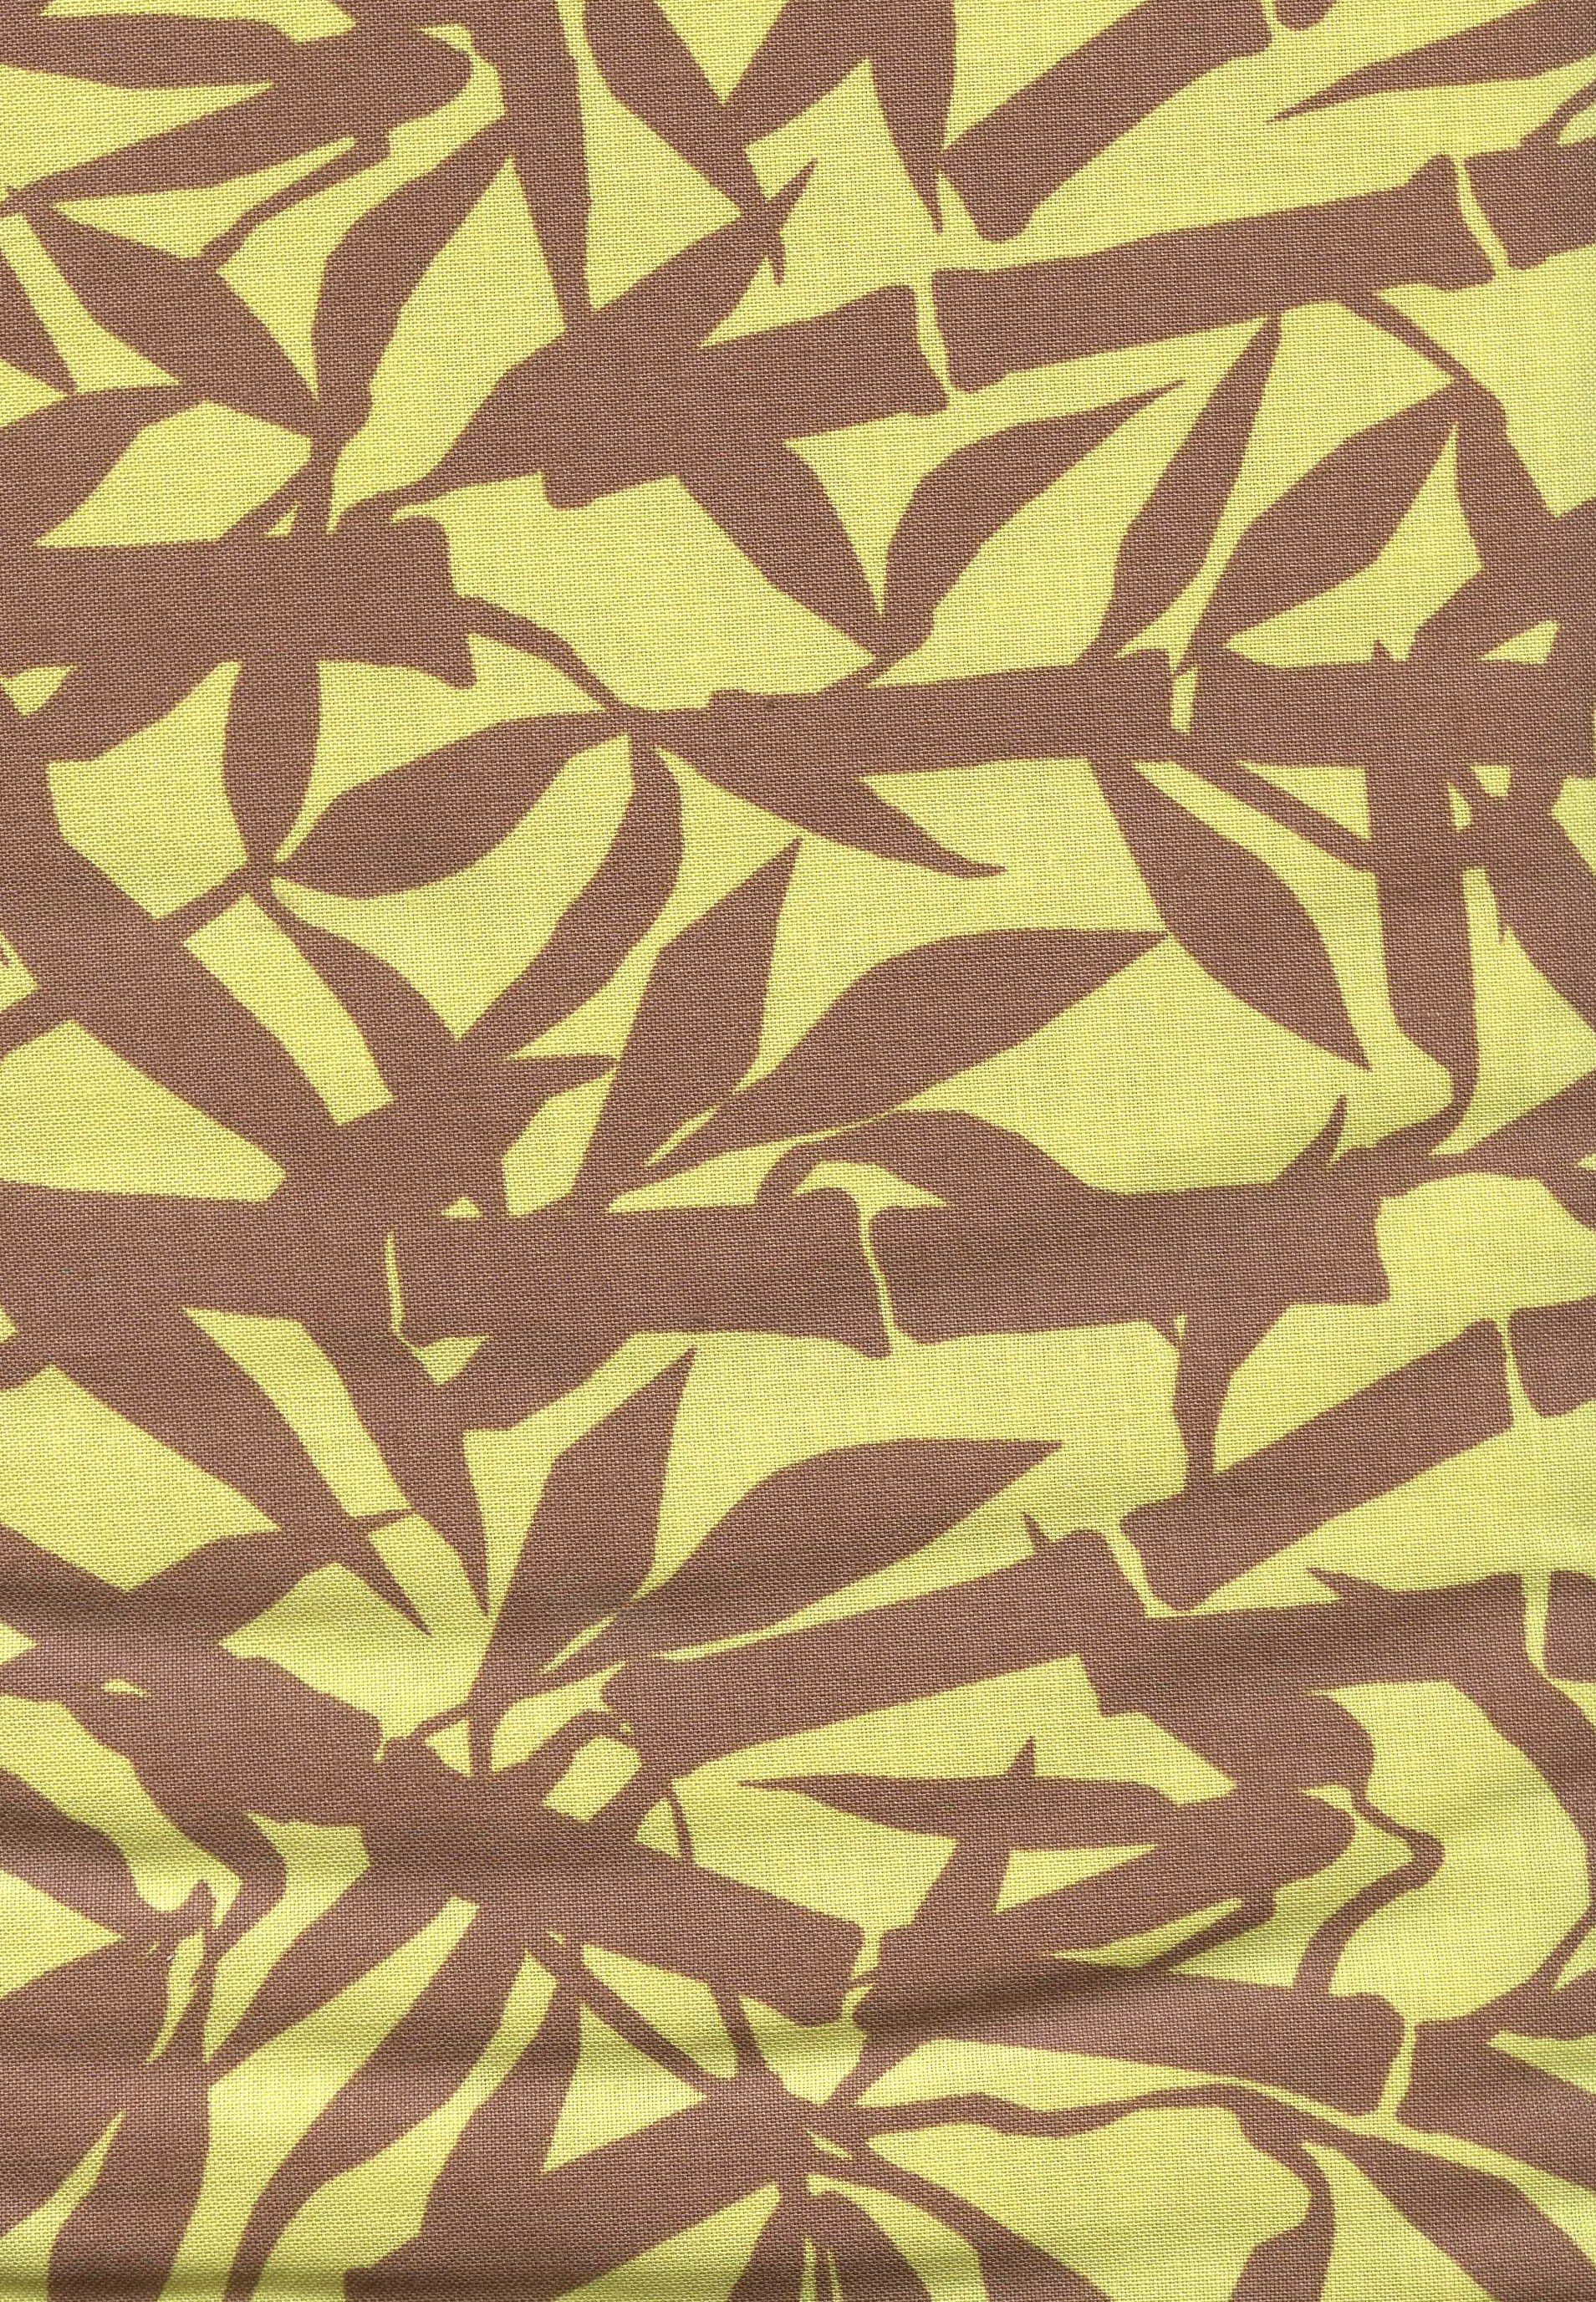 """Spa"" by Rosemarie Lavin Green and Brown Bamboo Print"